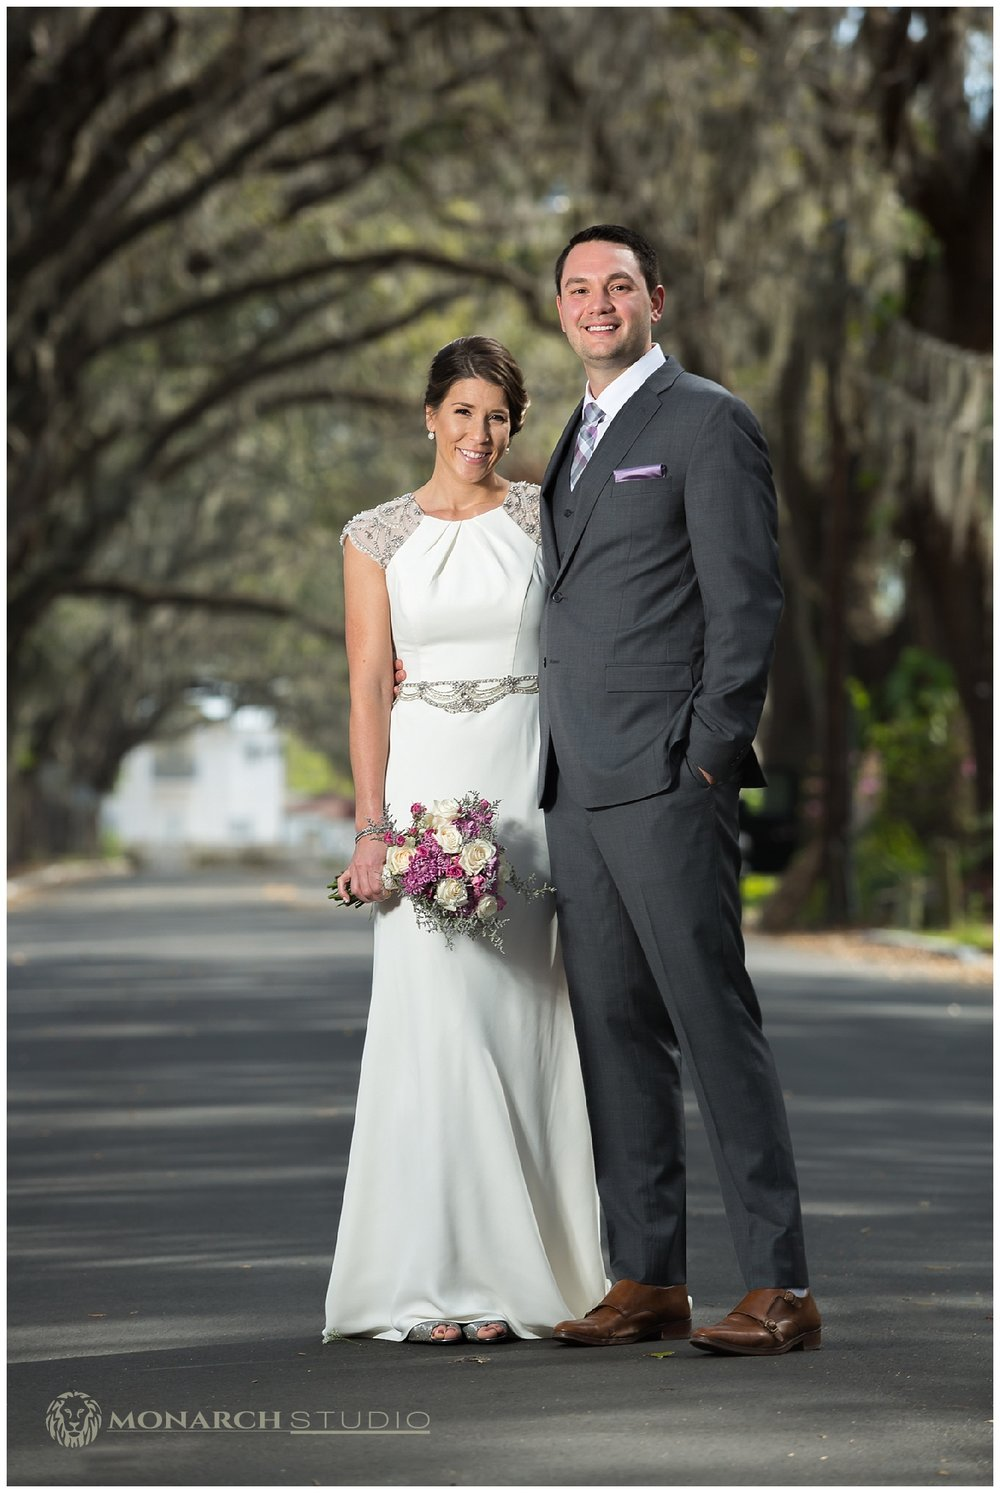 Destination Wedding Photographer - Saint Augustine 145.JPG